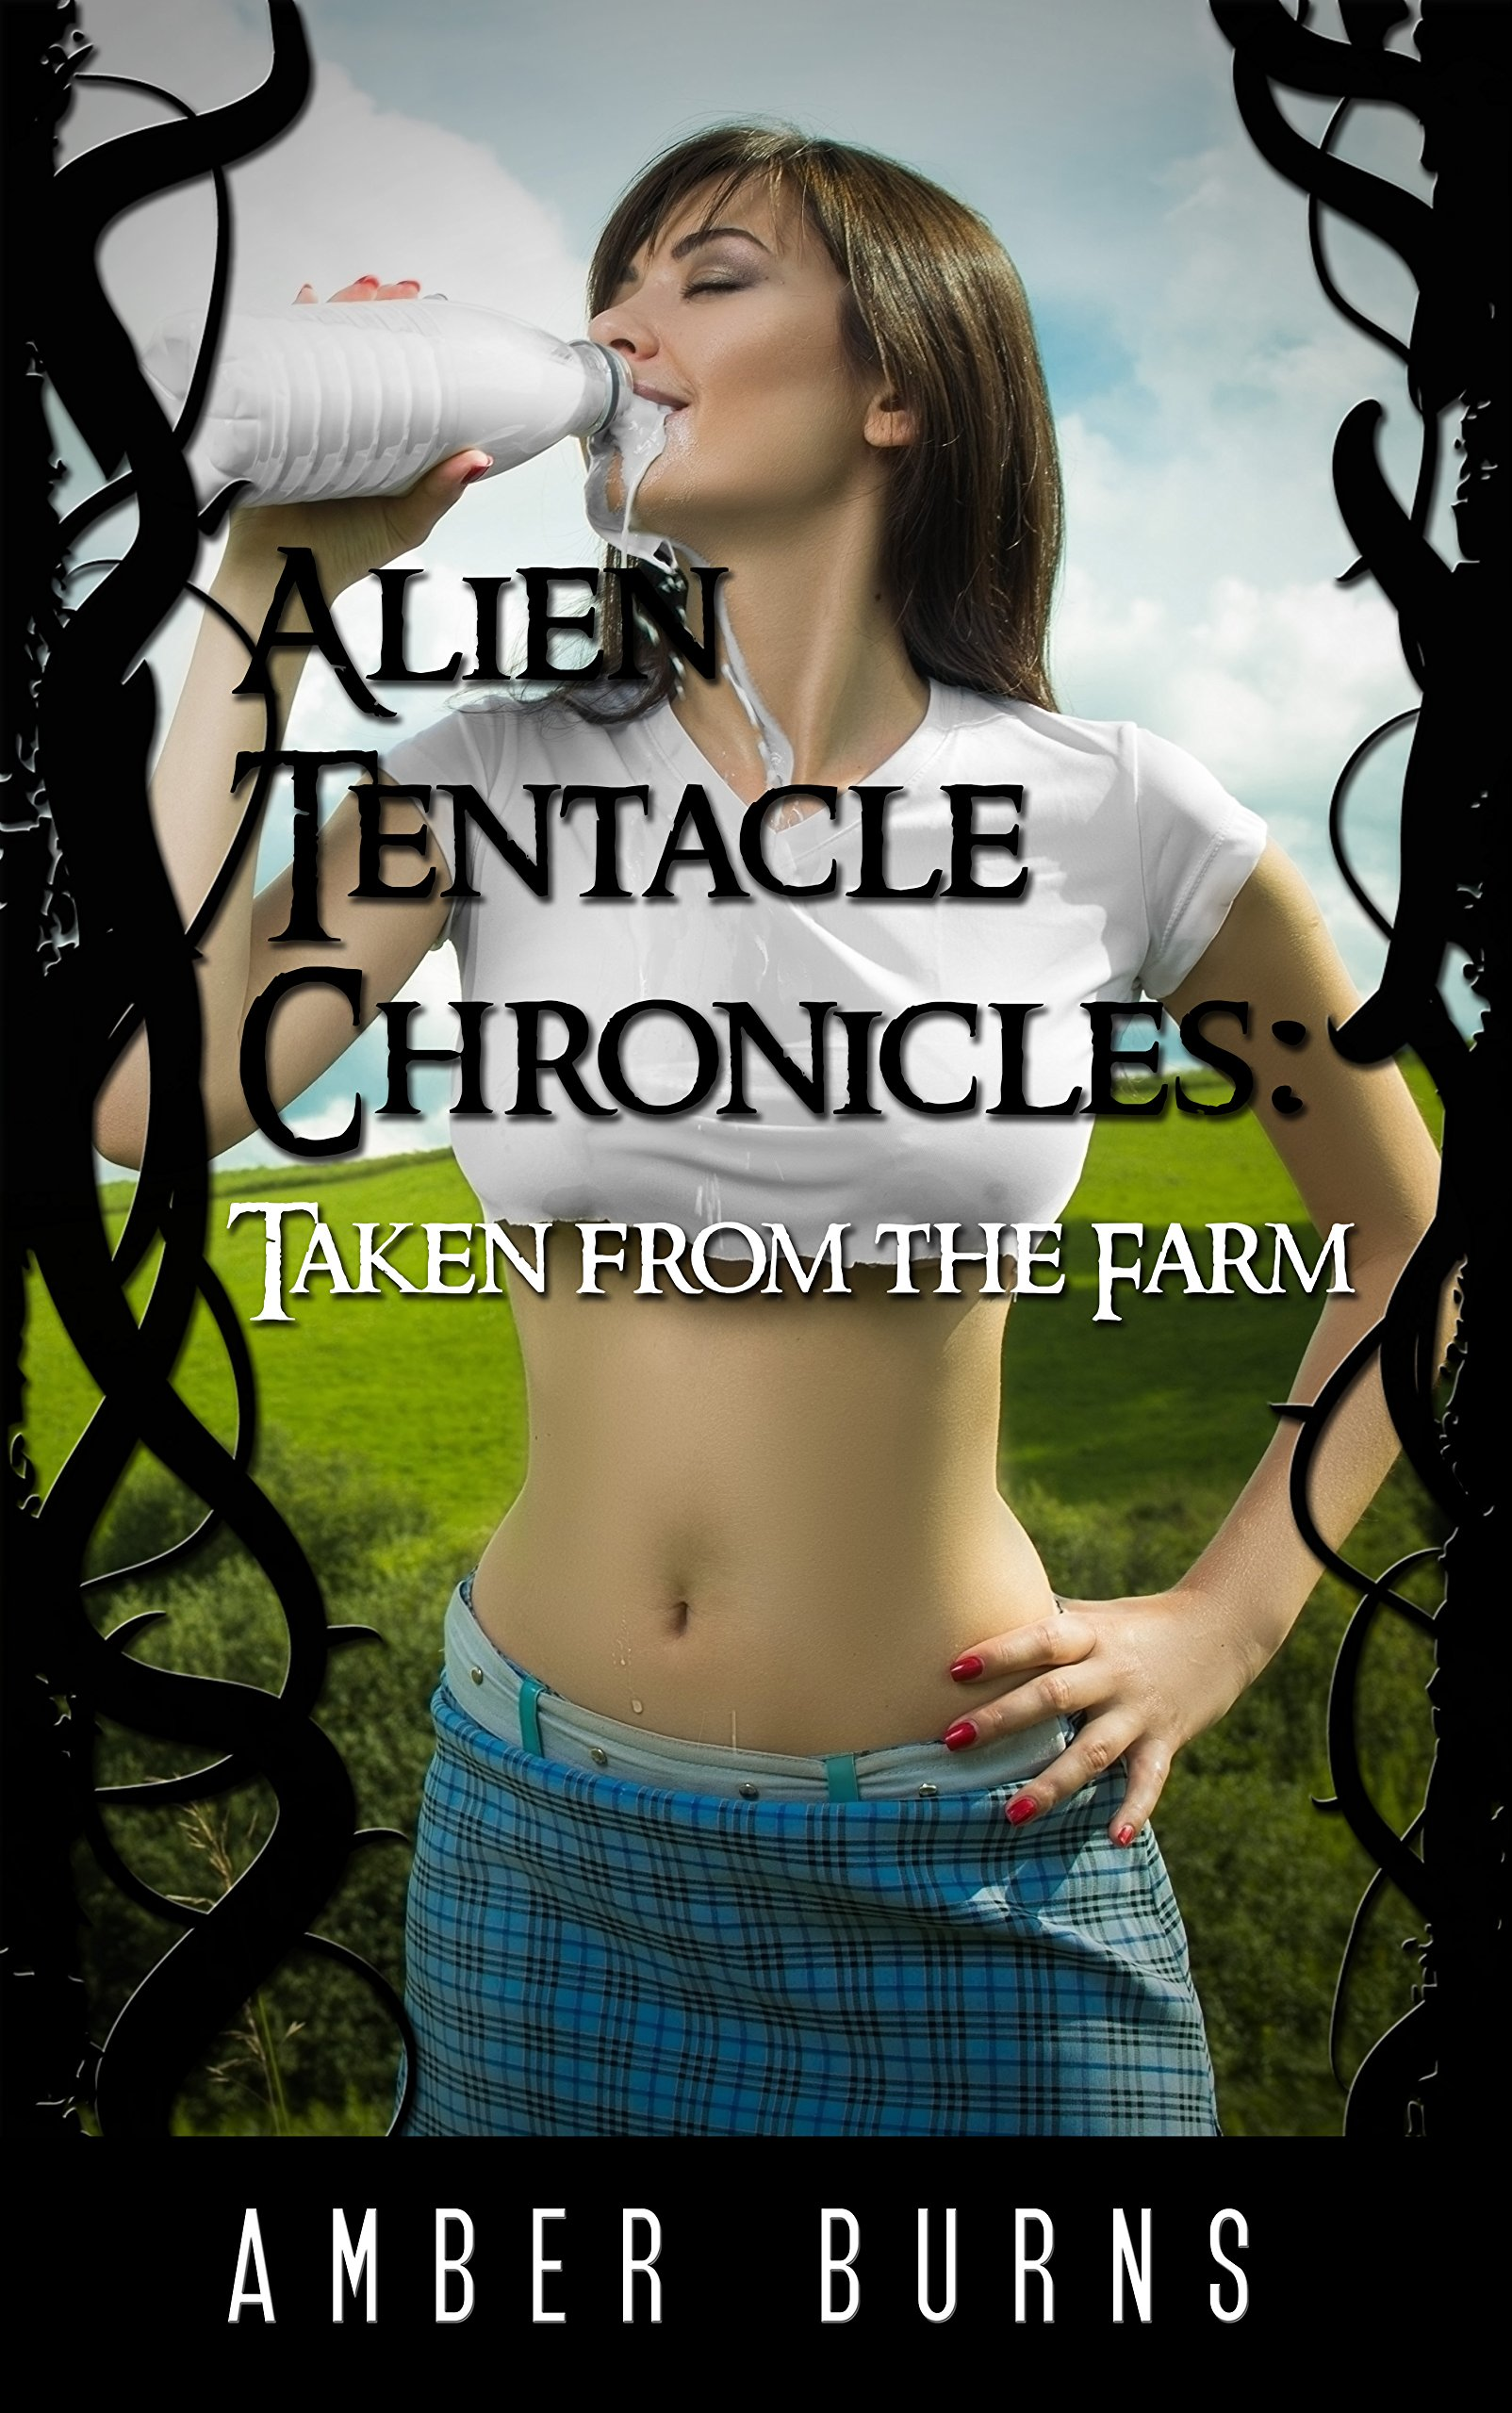 aducted by tentacle aliens